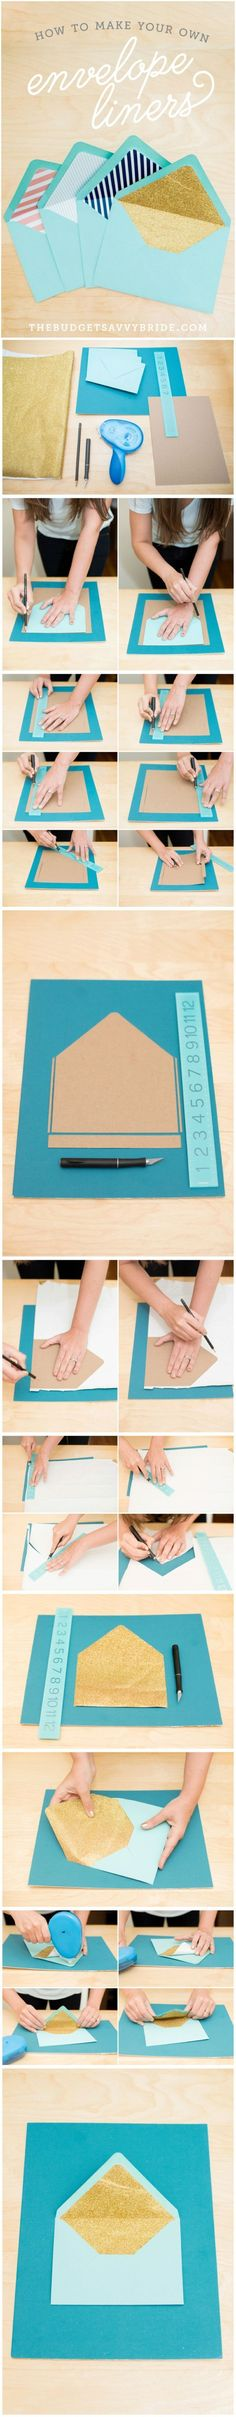 Line 'em up, send 'em out! #DIY envelope liners make any correspondence special.